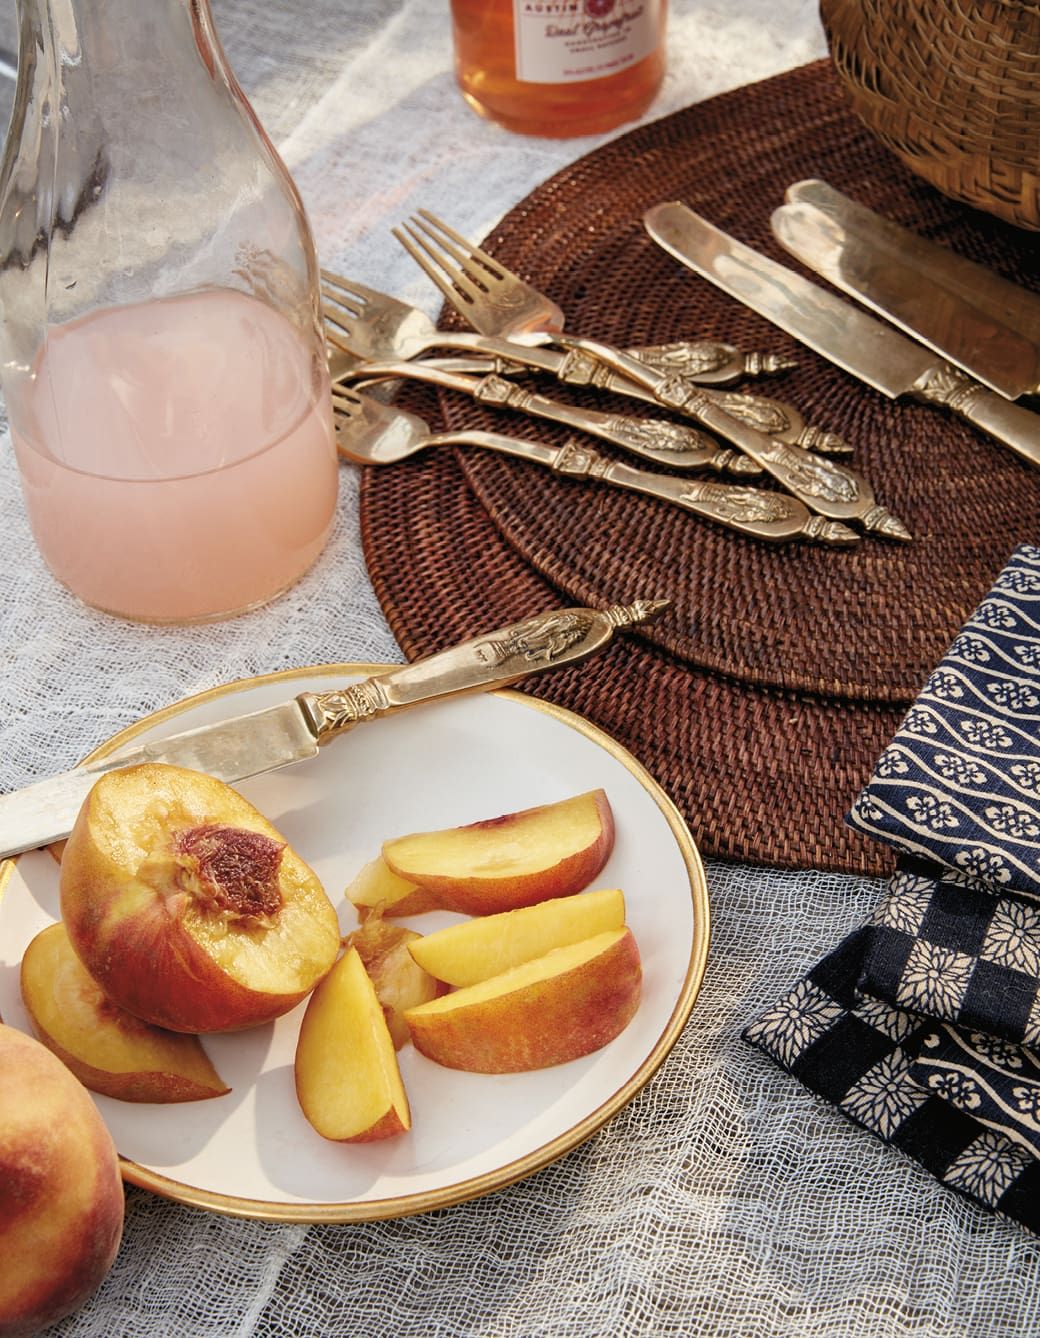 Closeup of silverware and a plate of peaches